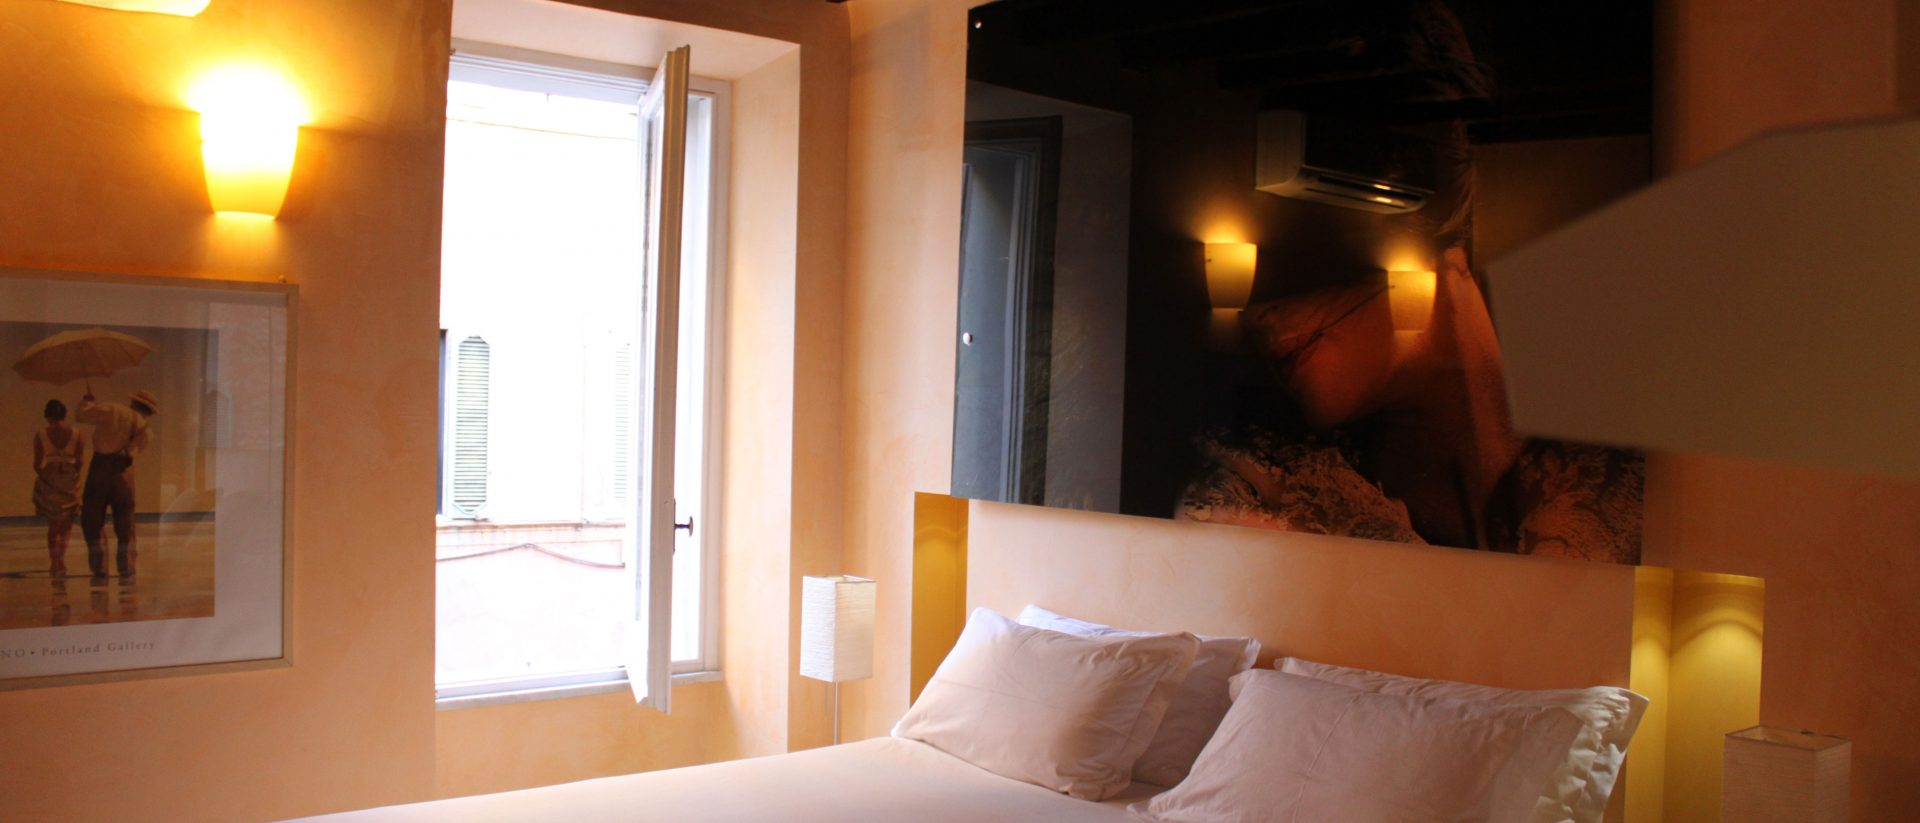 BDB Luxury Rooms Spagna | Luxury room in Rome in Piazza di Spagna